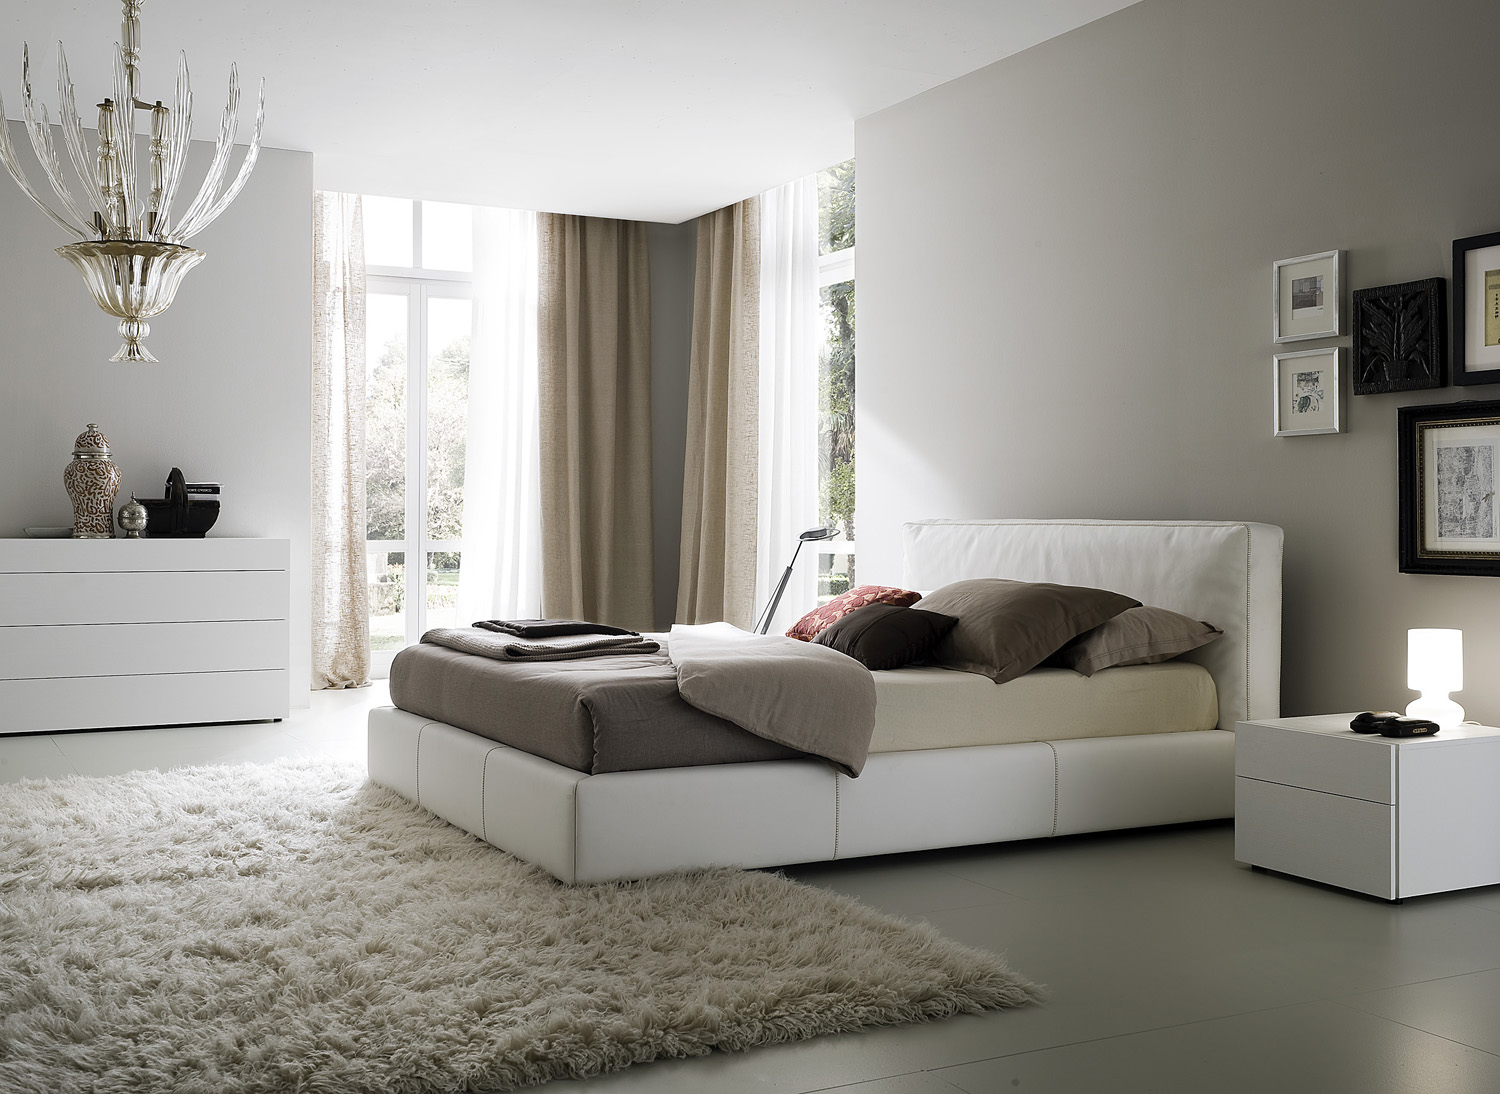 Decorating Bedroom bedroom decorating ideas from evinco